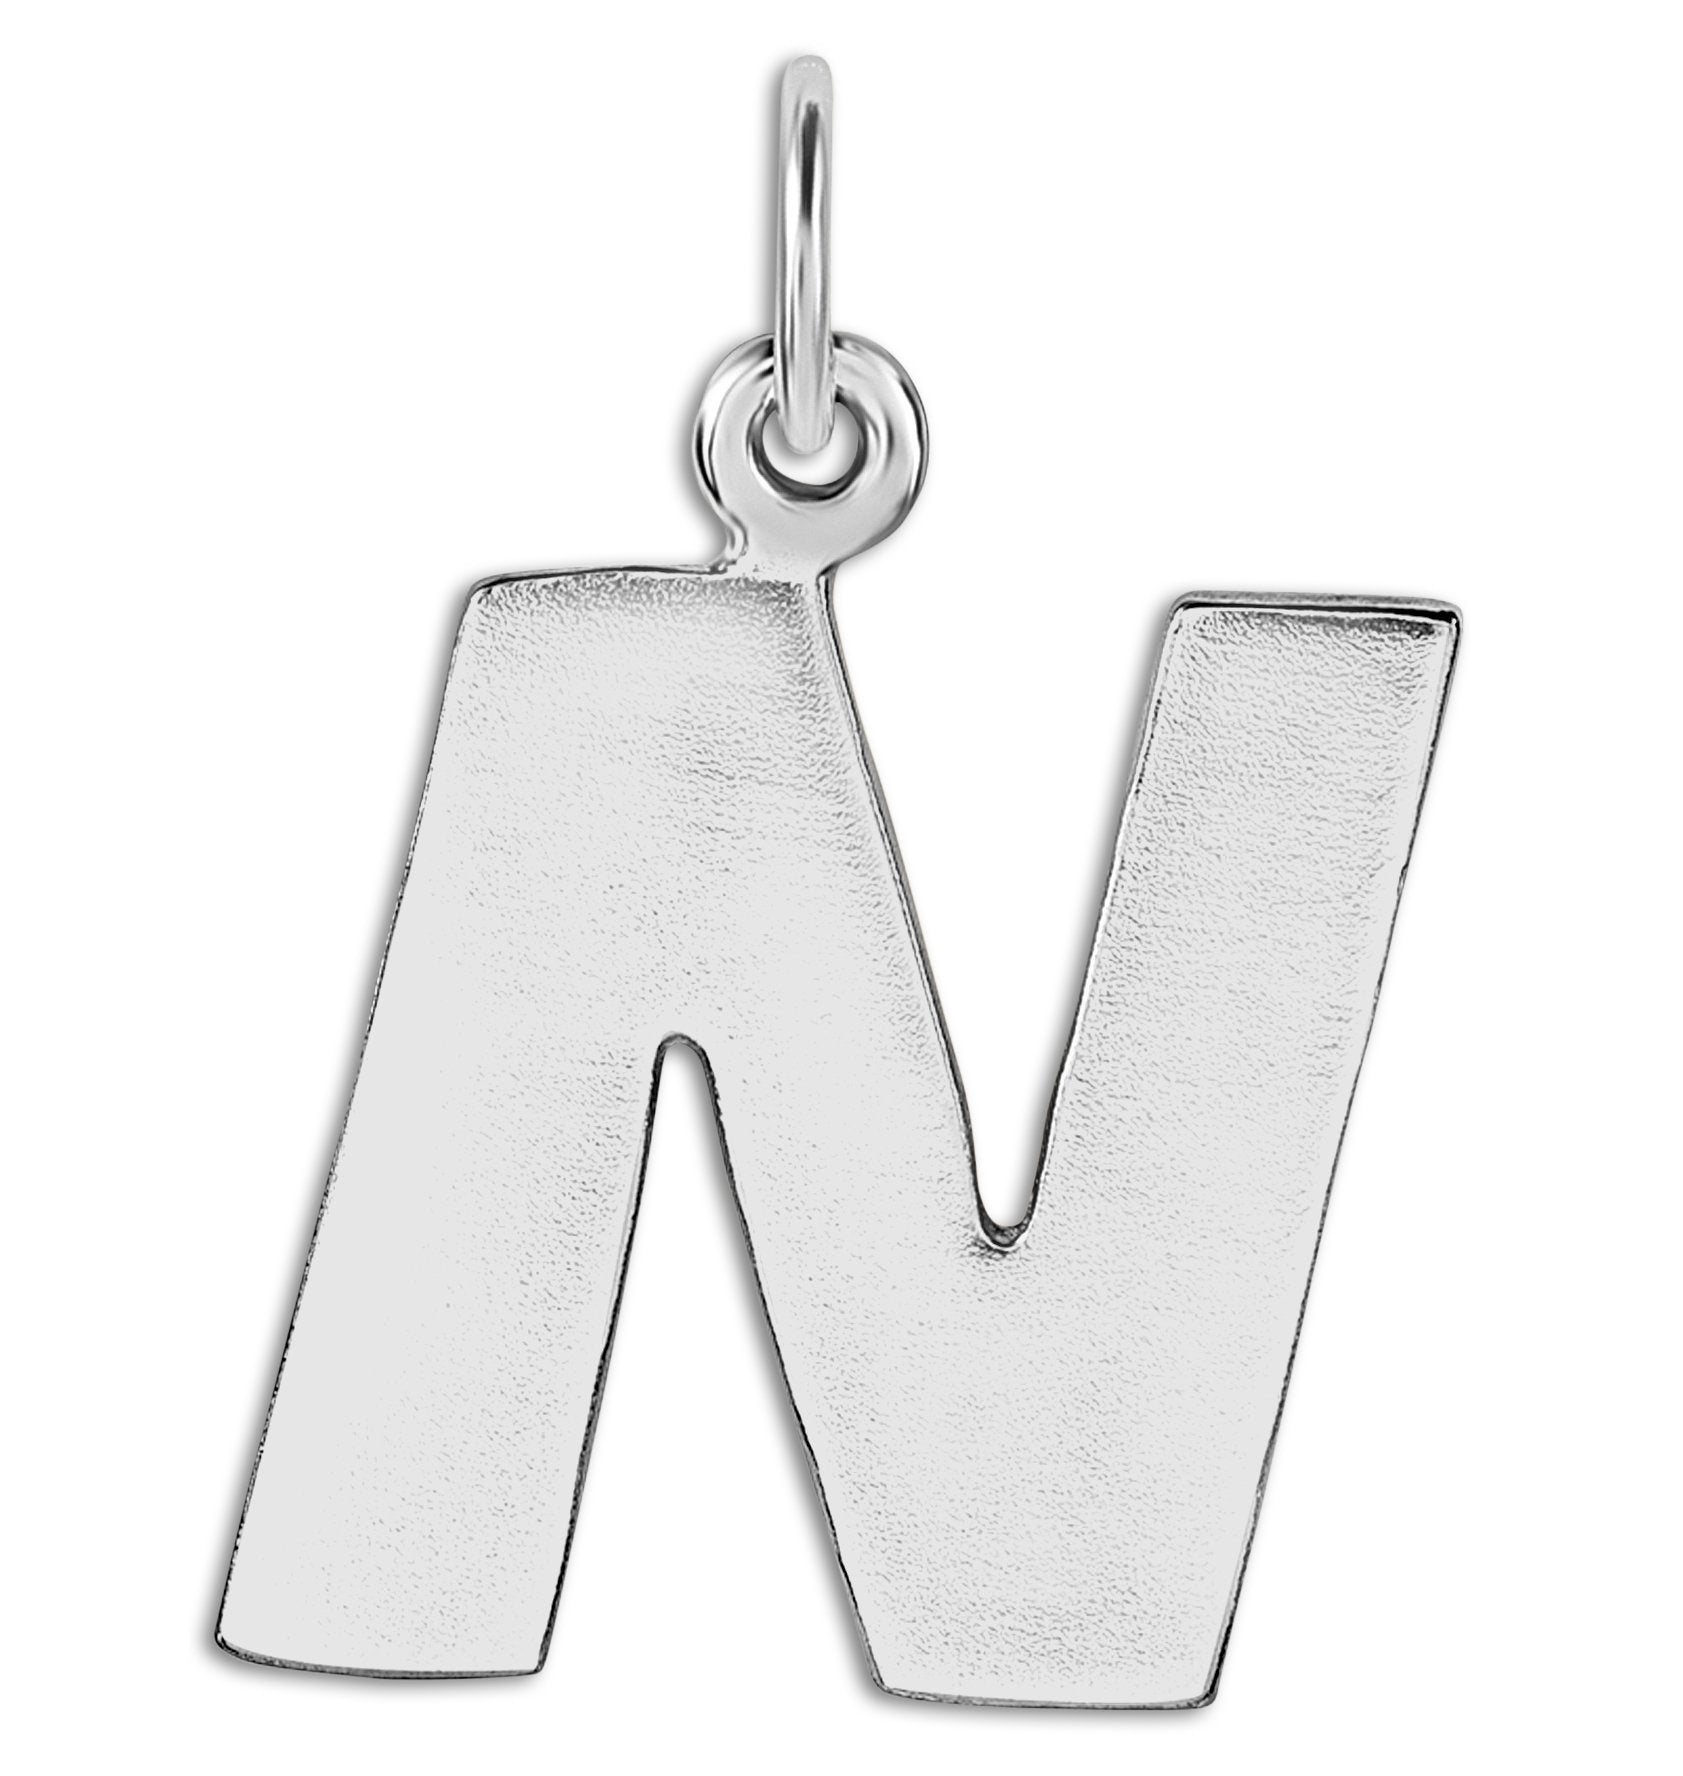 """N"" Cutout Letter Charm Sterling Silver Jewelry For Necklaces And Bracelets From Helen Ficalora Every Letter And Initial Available"